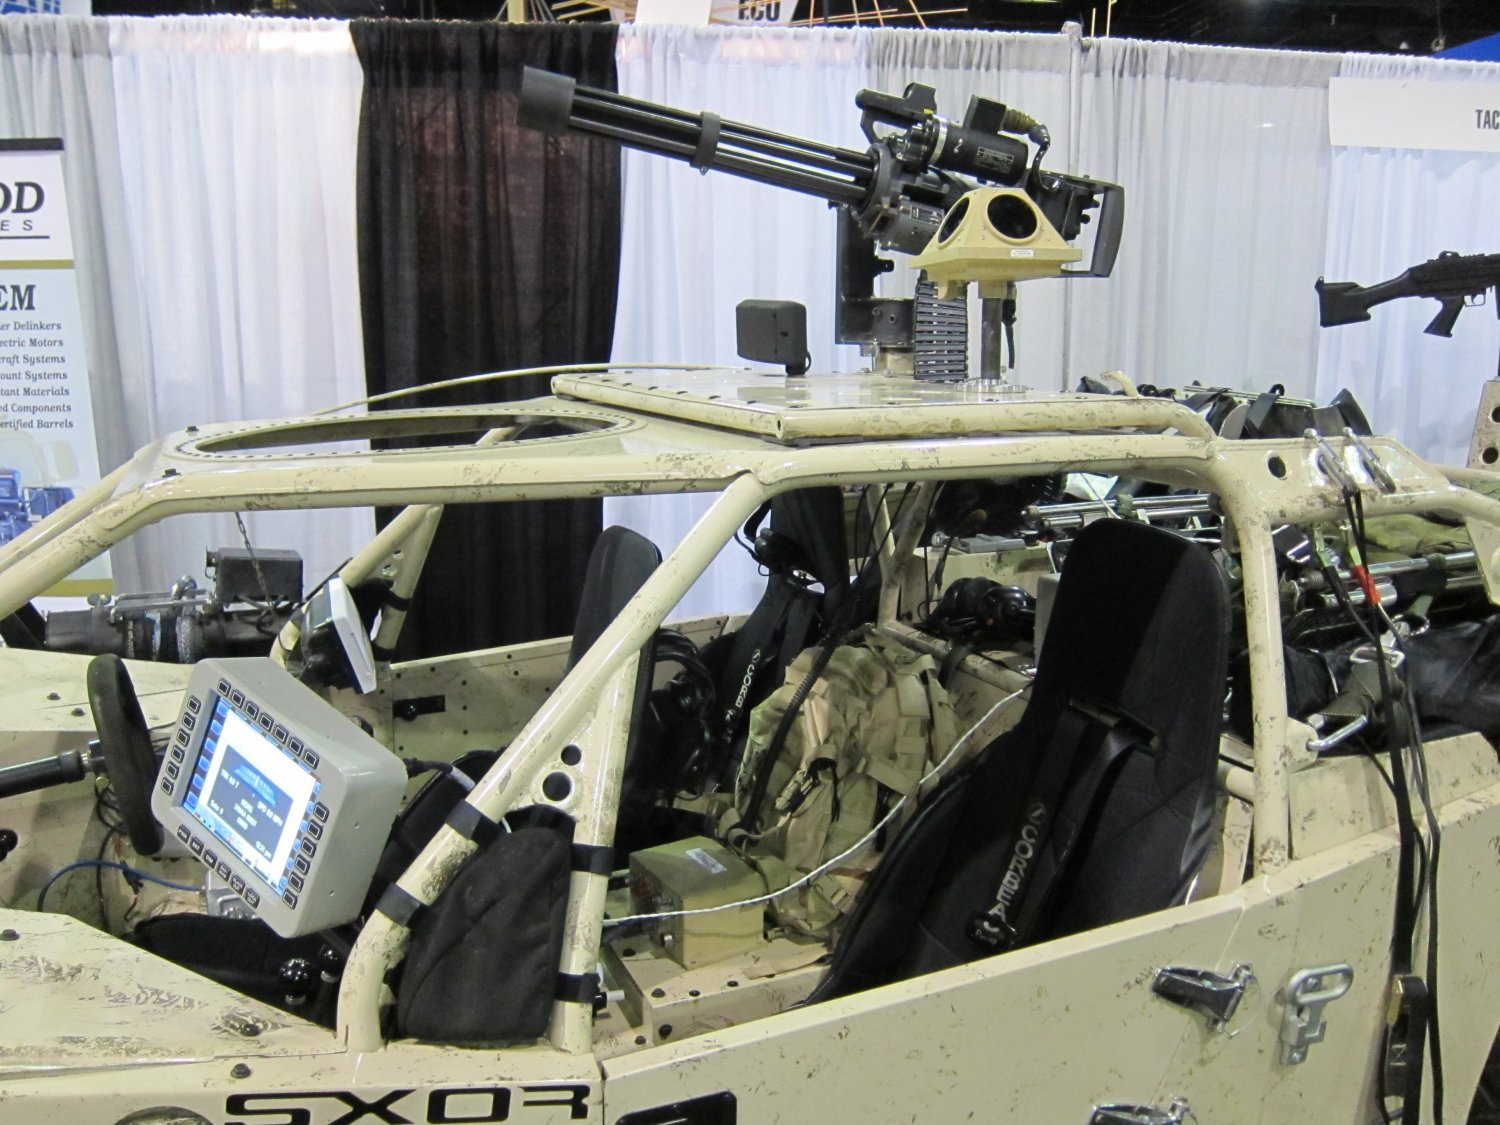 Garwood Industries M 134G Gatling Gun Minigun System SOFIC 2011 DefenseReview DR 4 BC Customs (BCC) Search and Rescue Tactical Vehicle 5 (SRTV 5) Baja Racing Type All Terrain Combat Vehicle Armed/Weaponized with 7.62mm NATO Garwood Industries (GI) M134G Minigun/Gatling Gun: SXOR Mobility Vehicles Go Tactical for Military Special Operations Forces (SOF) Missions